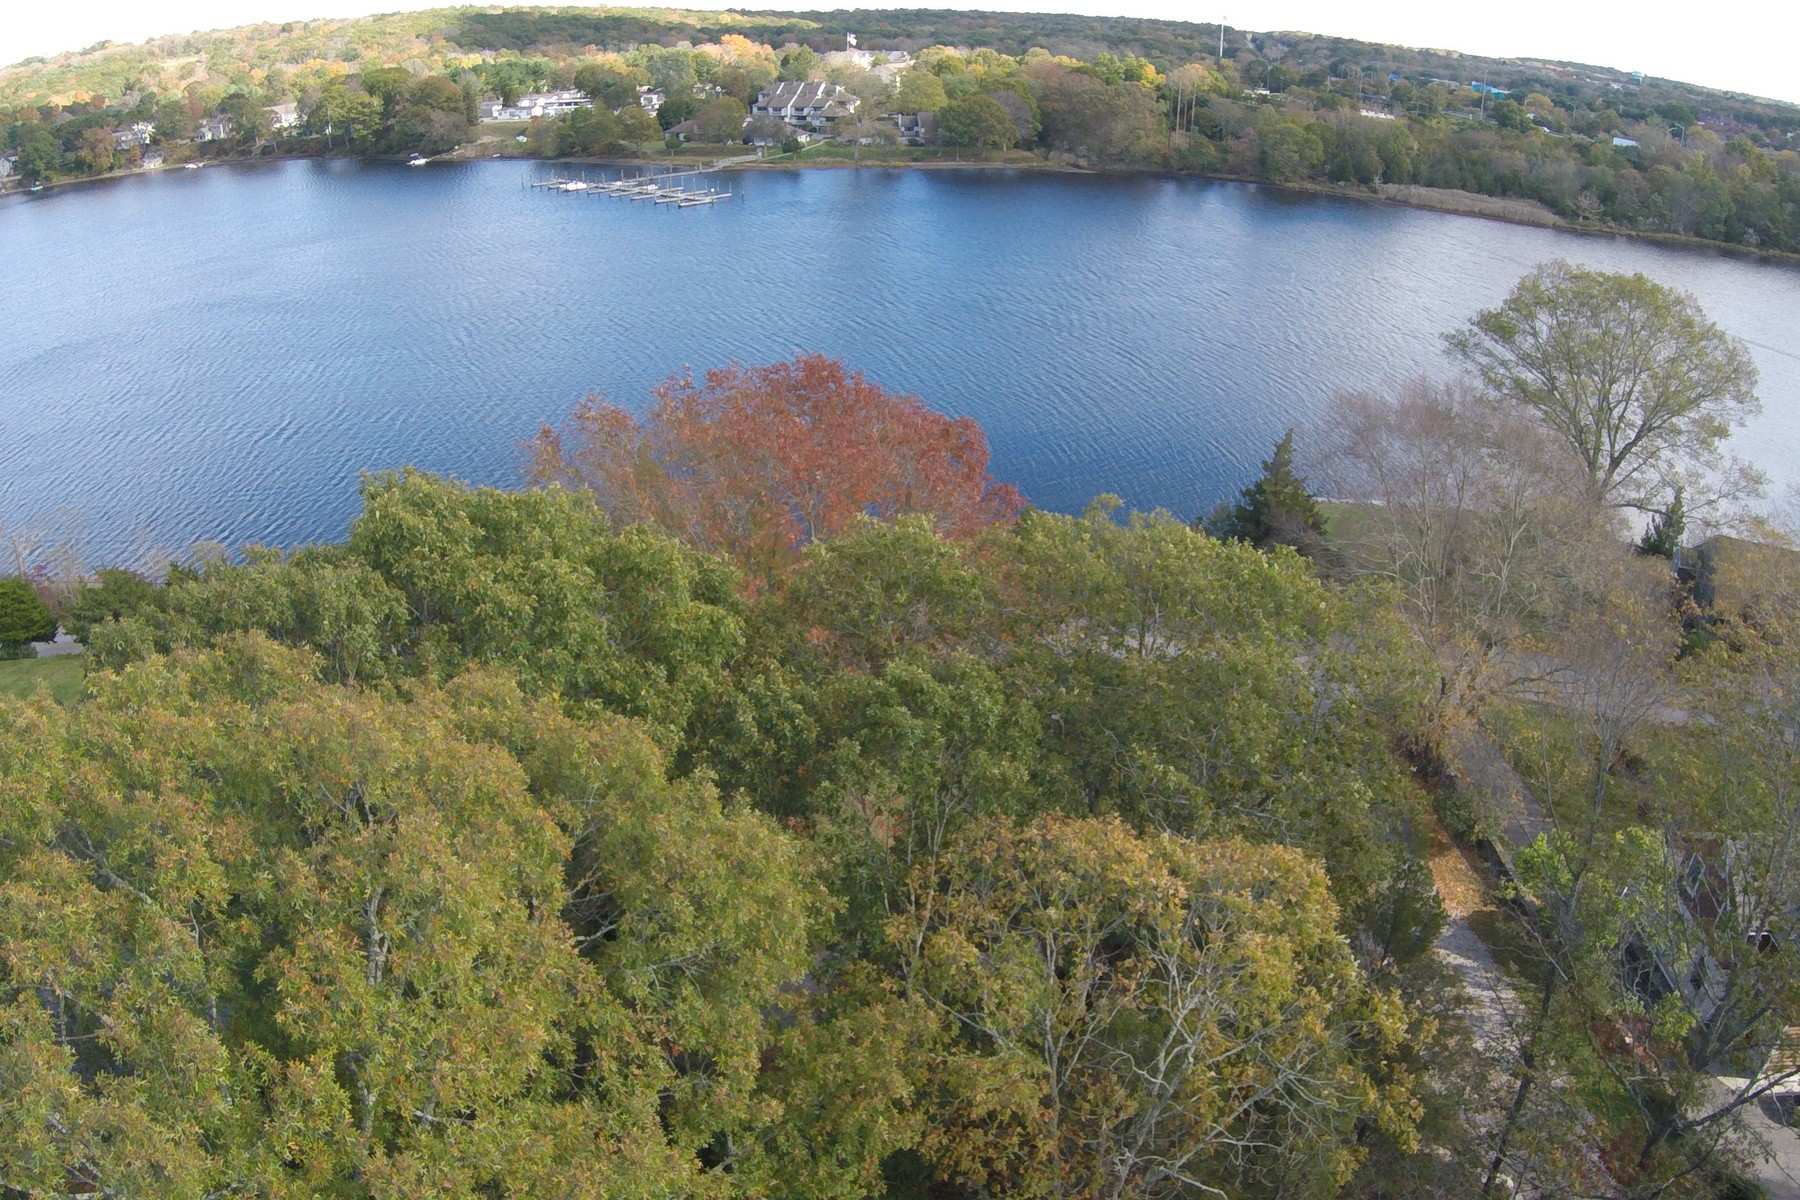 Terreno por un Venta en Amazing River Views 743-1 River Rd Groton, Connecticut 06355 Estados Unidos